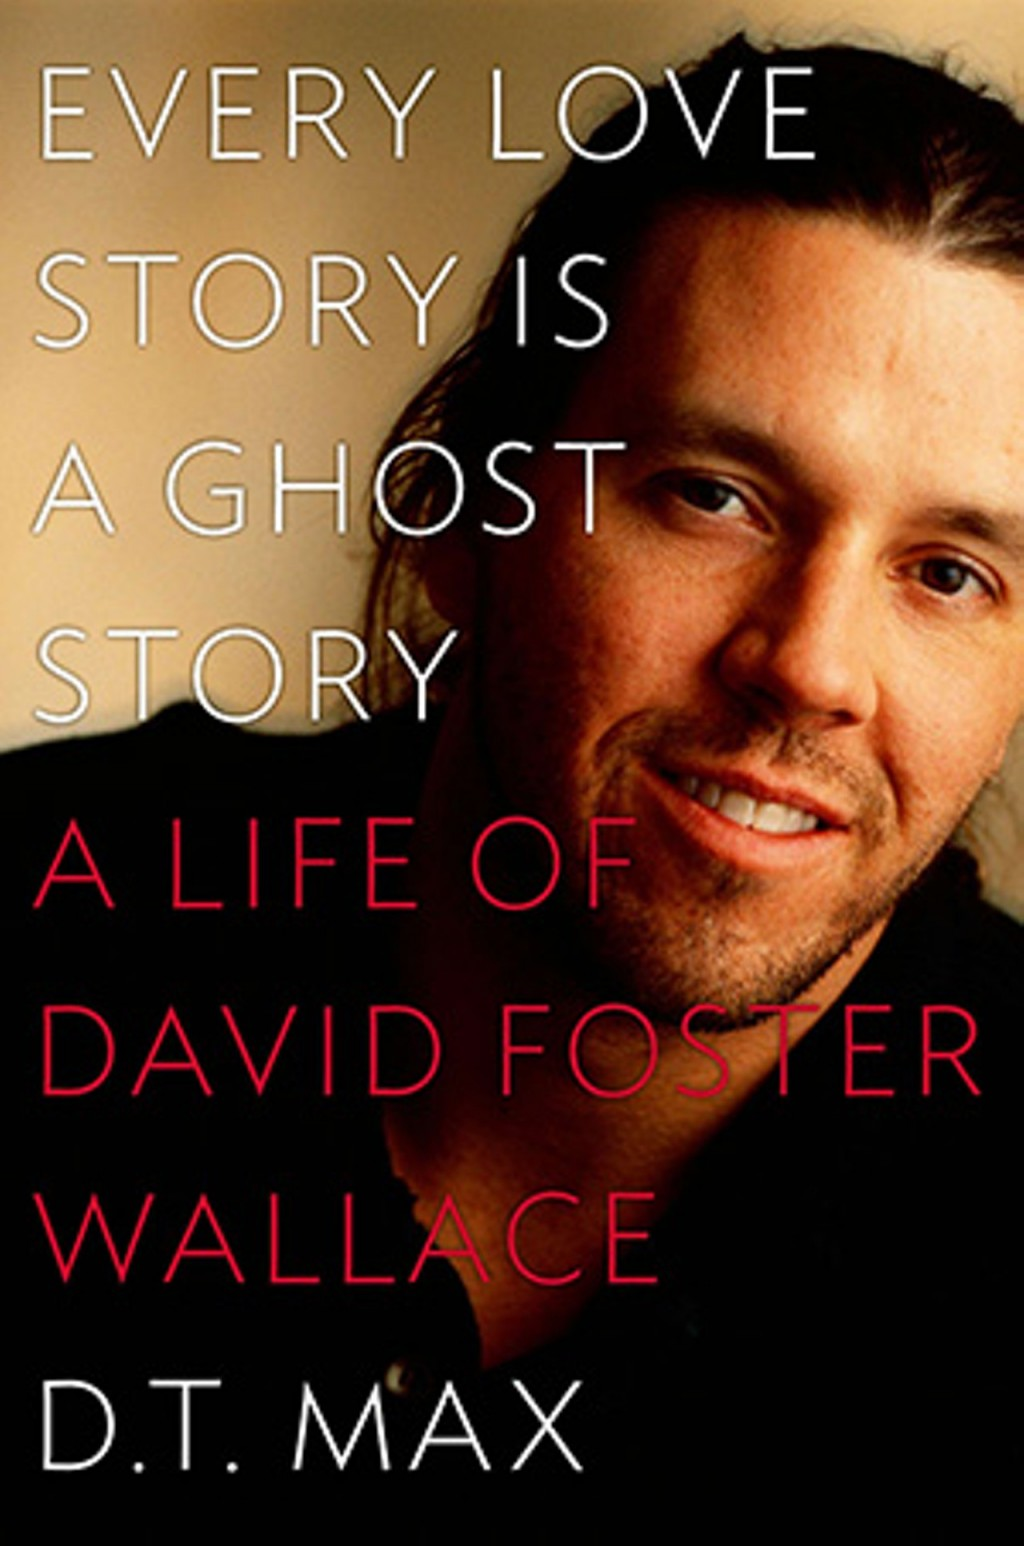 004 David Foster Wallace Essay Everylovestoryisaghoststory Singular On Television Consider Critical Essays This Is Water Large